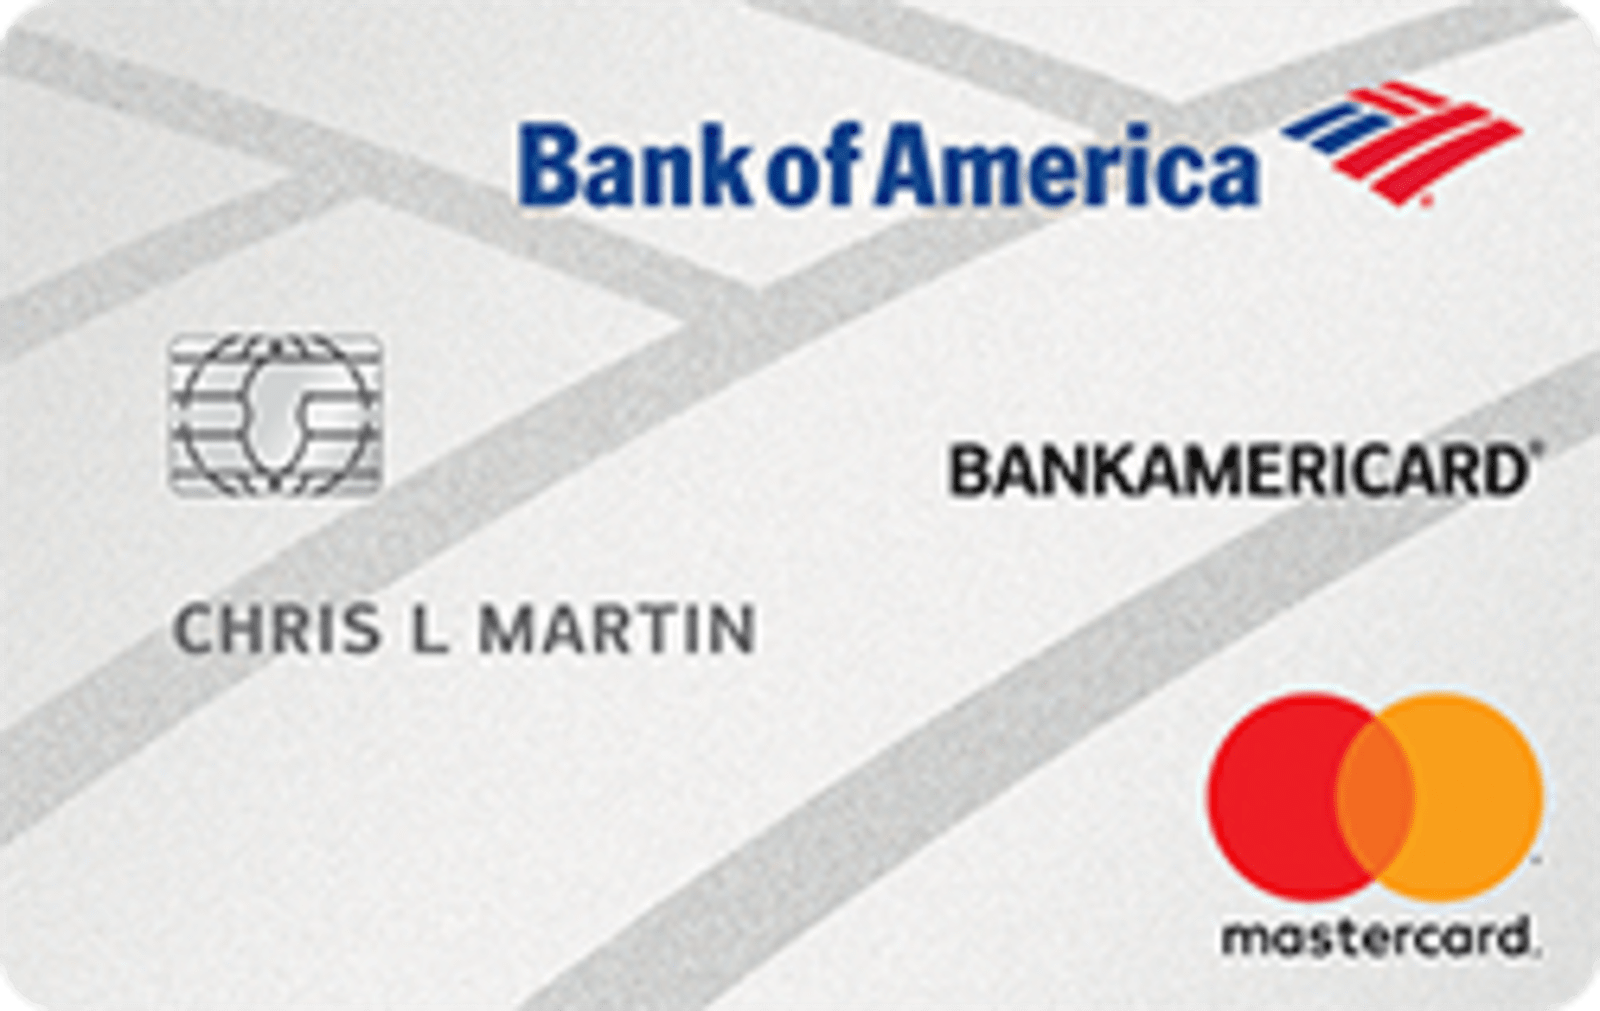 How to cancel bank of america credit card online